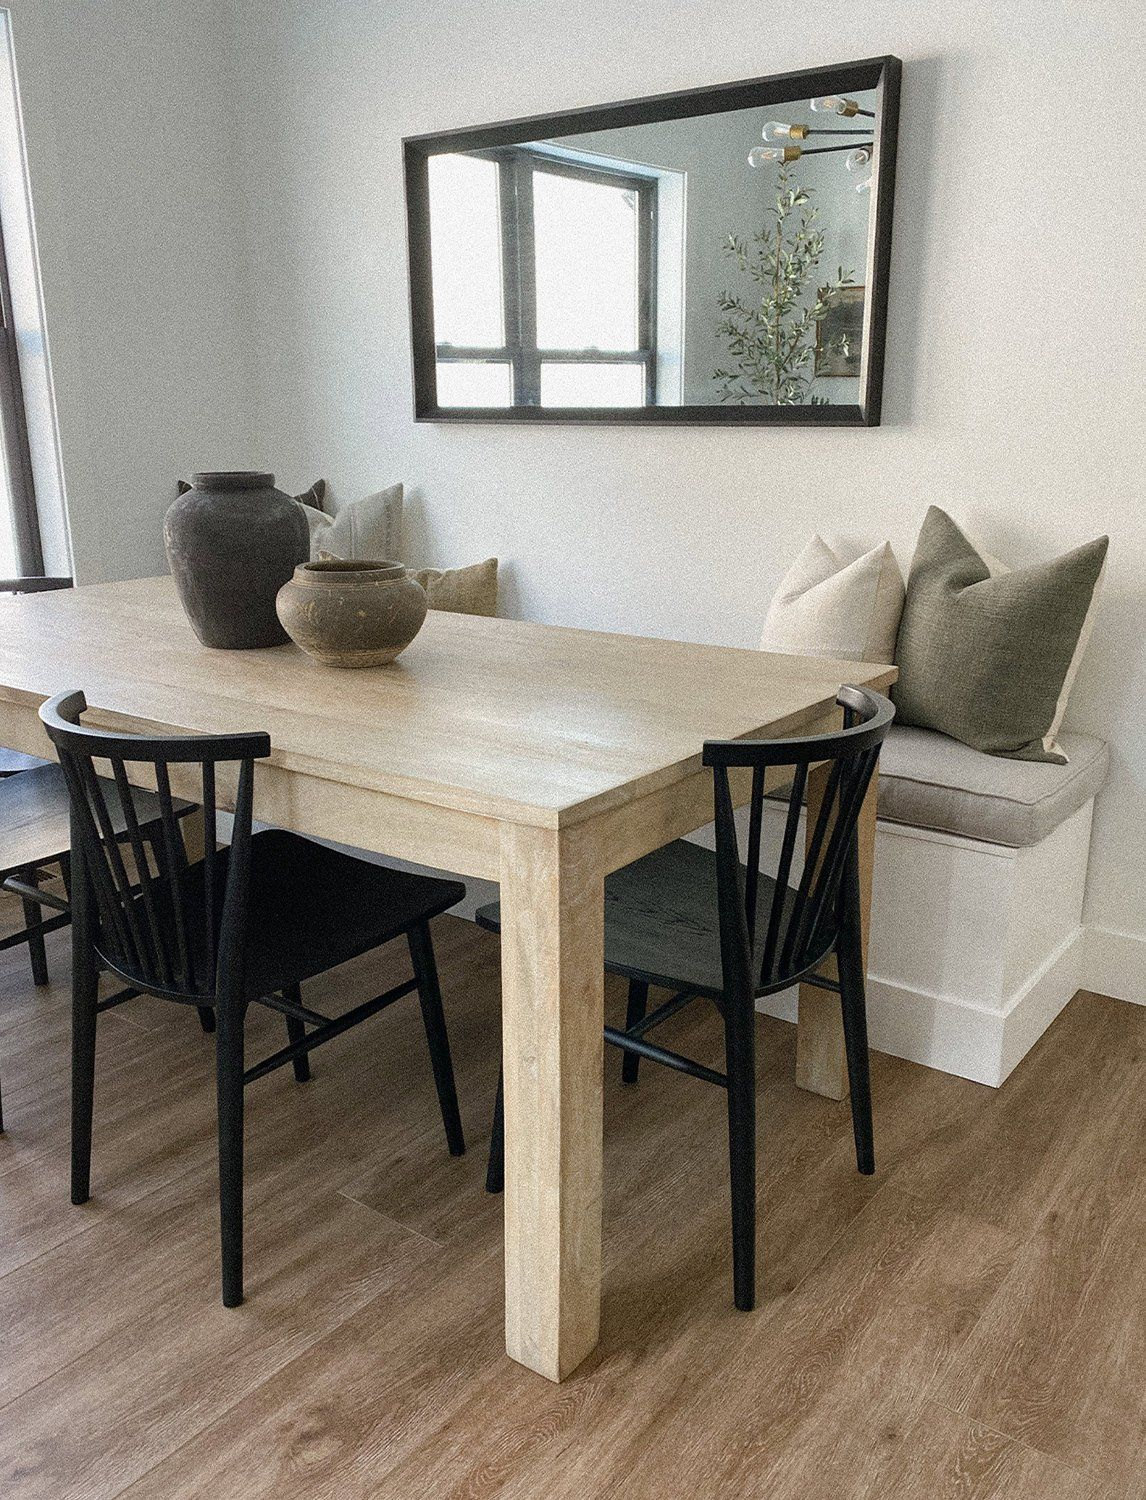 Toy Box Dining Room Built-In Bench